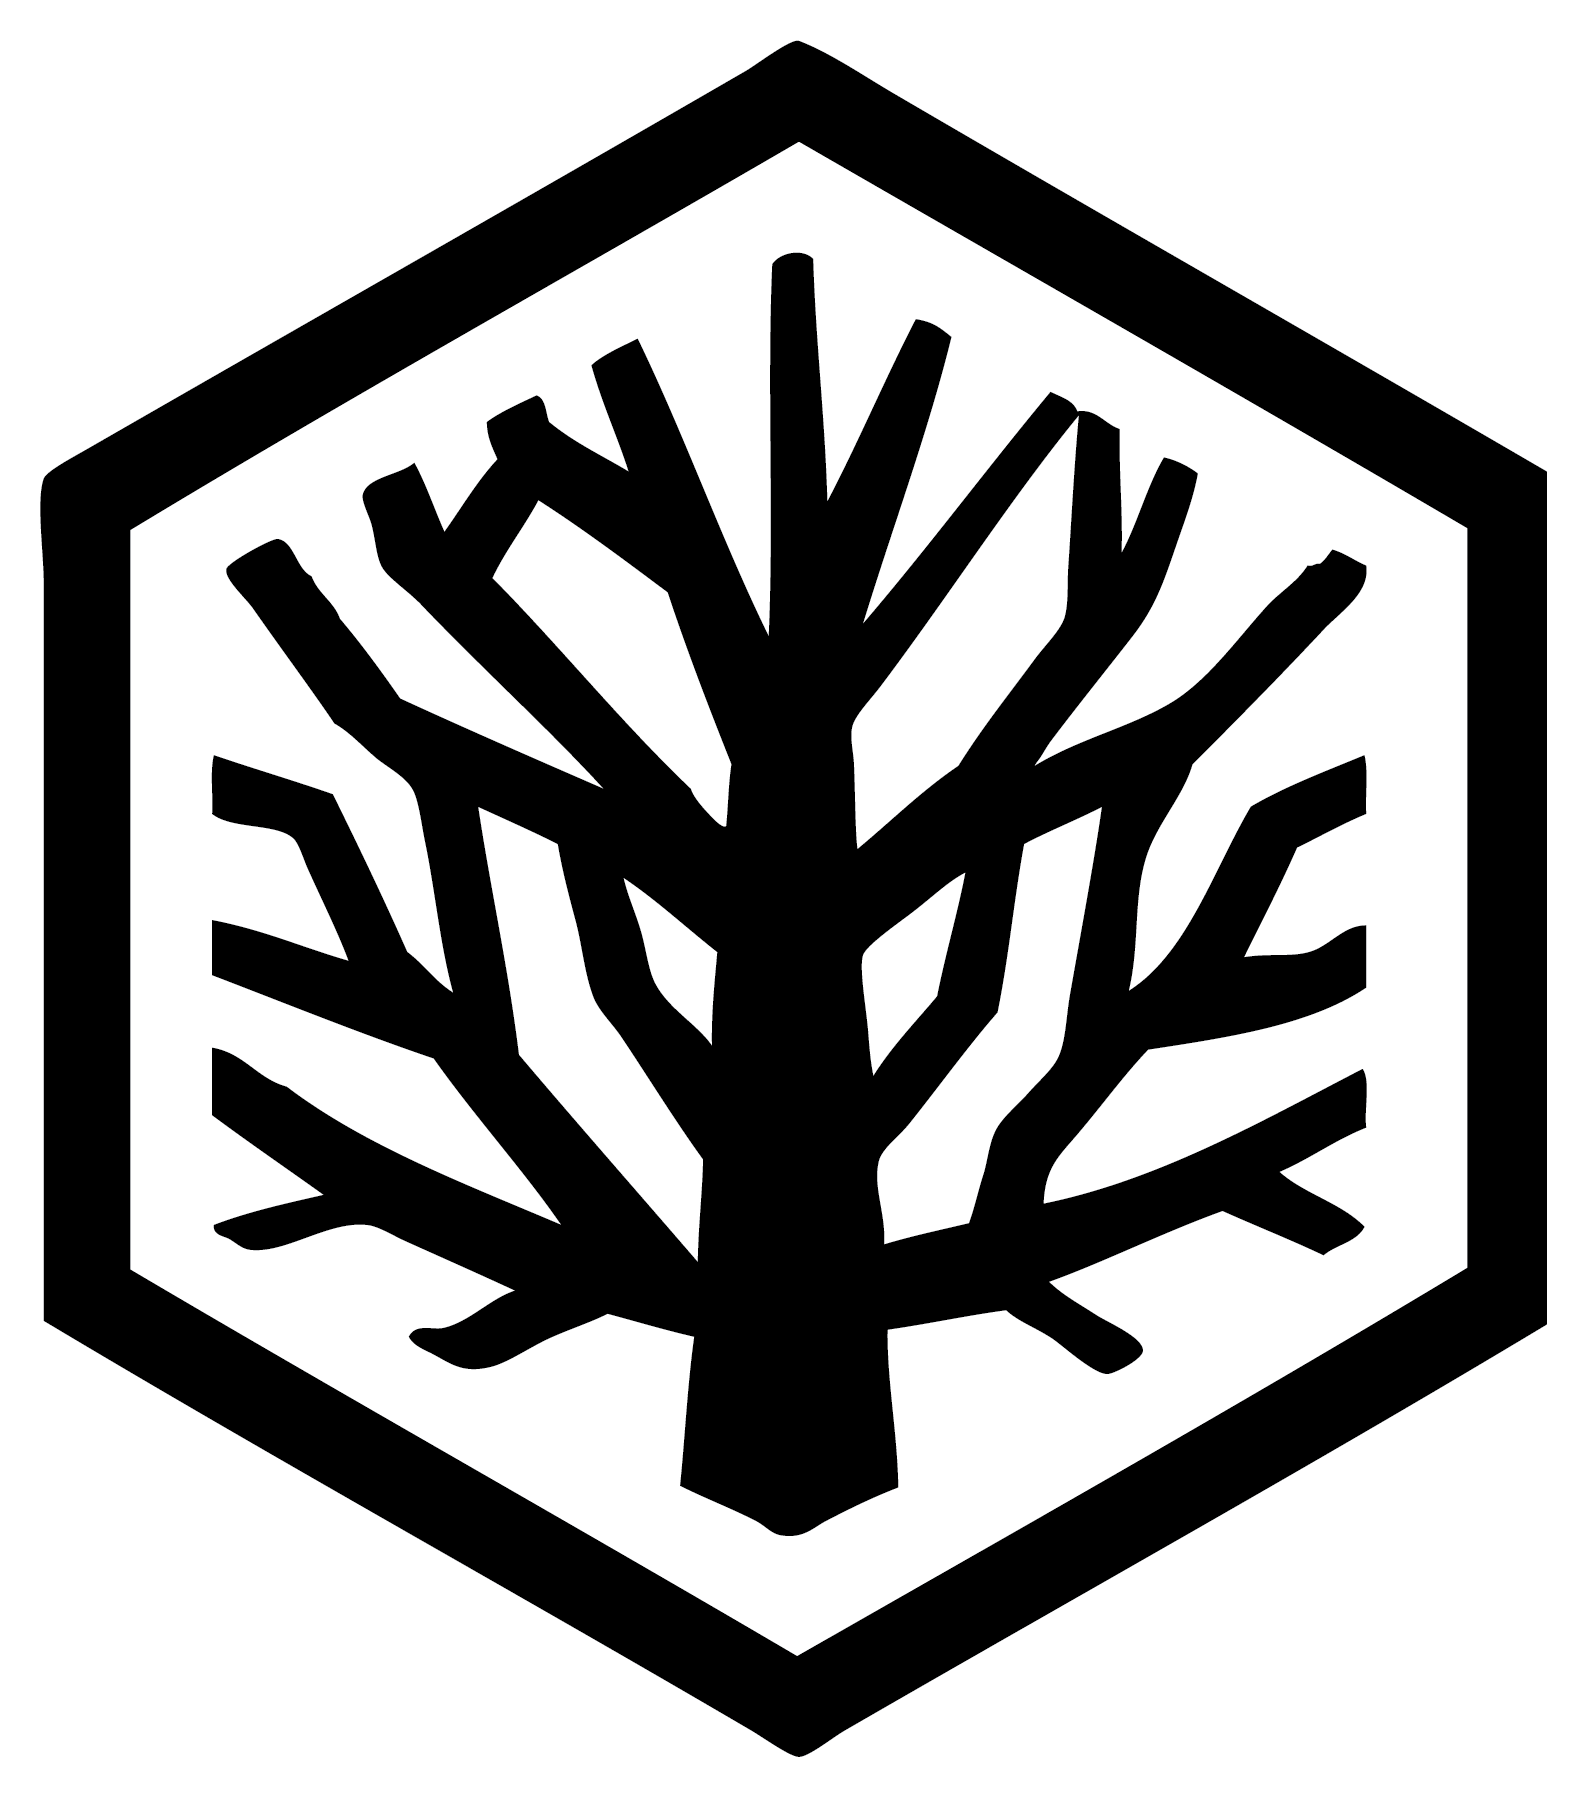 Honey tree logo